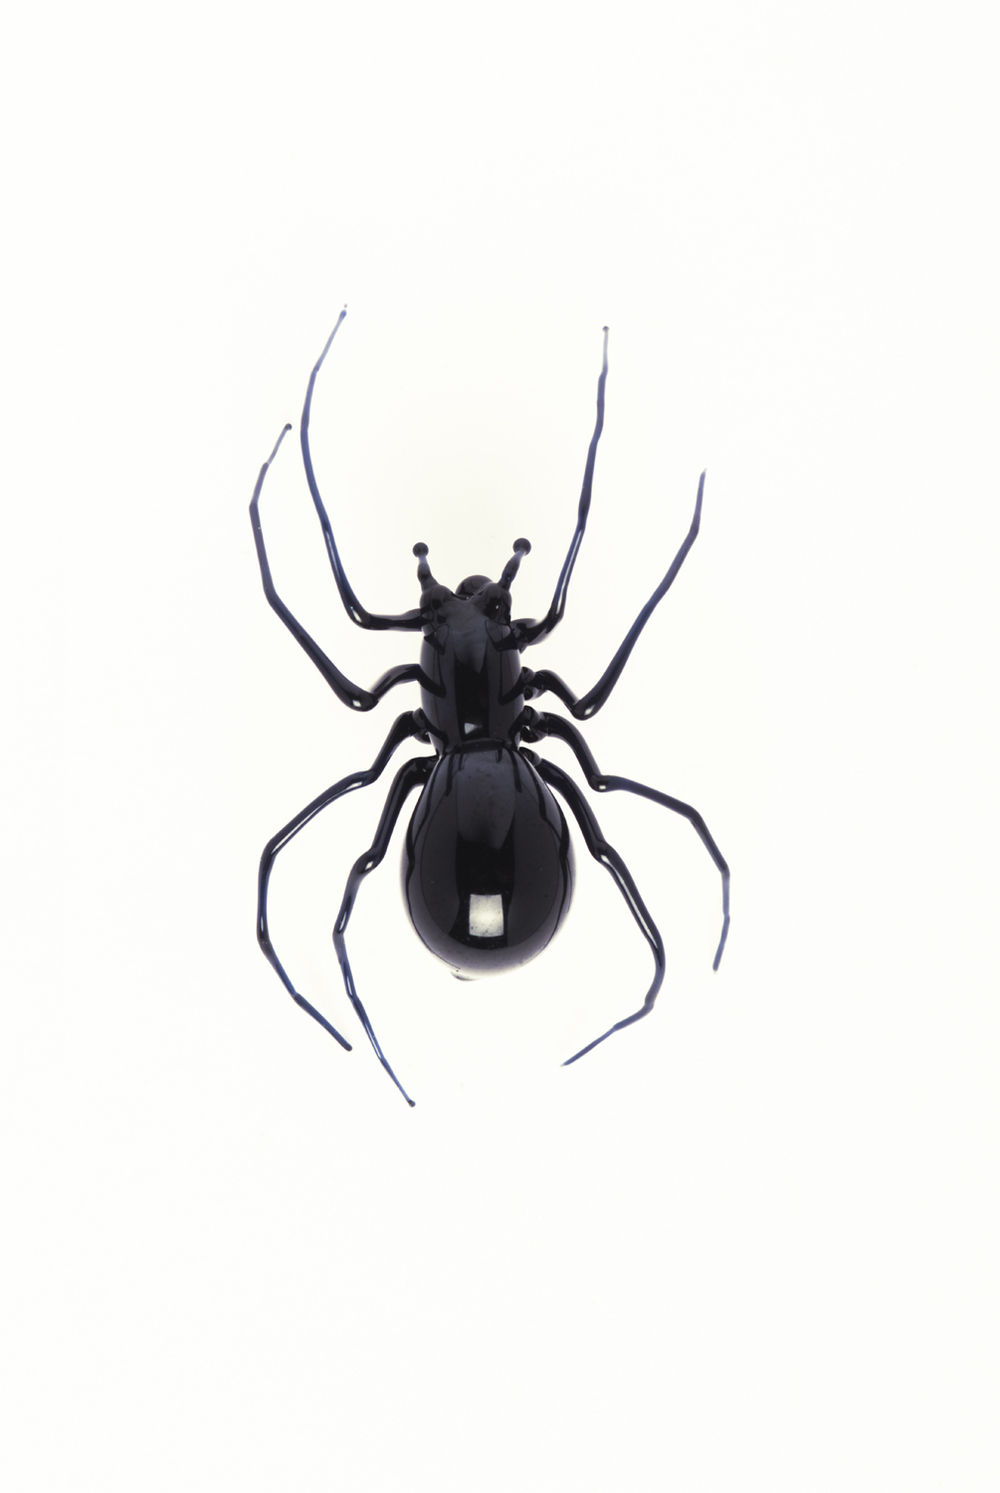 Vittorio Costantini,  Black Widow  (2005, soda-lime glass, 15/16 x 5/8 x 5/16 inches), VC.45